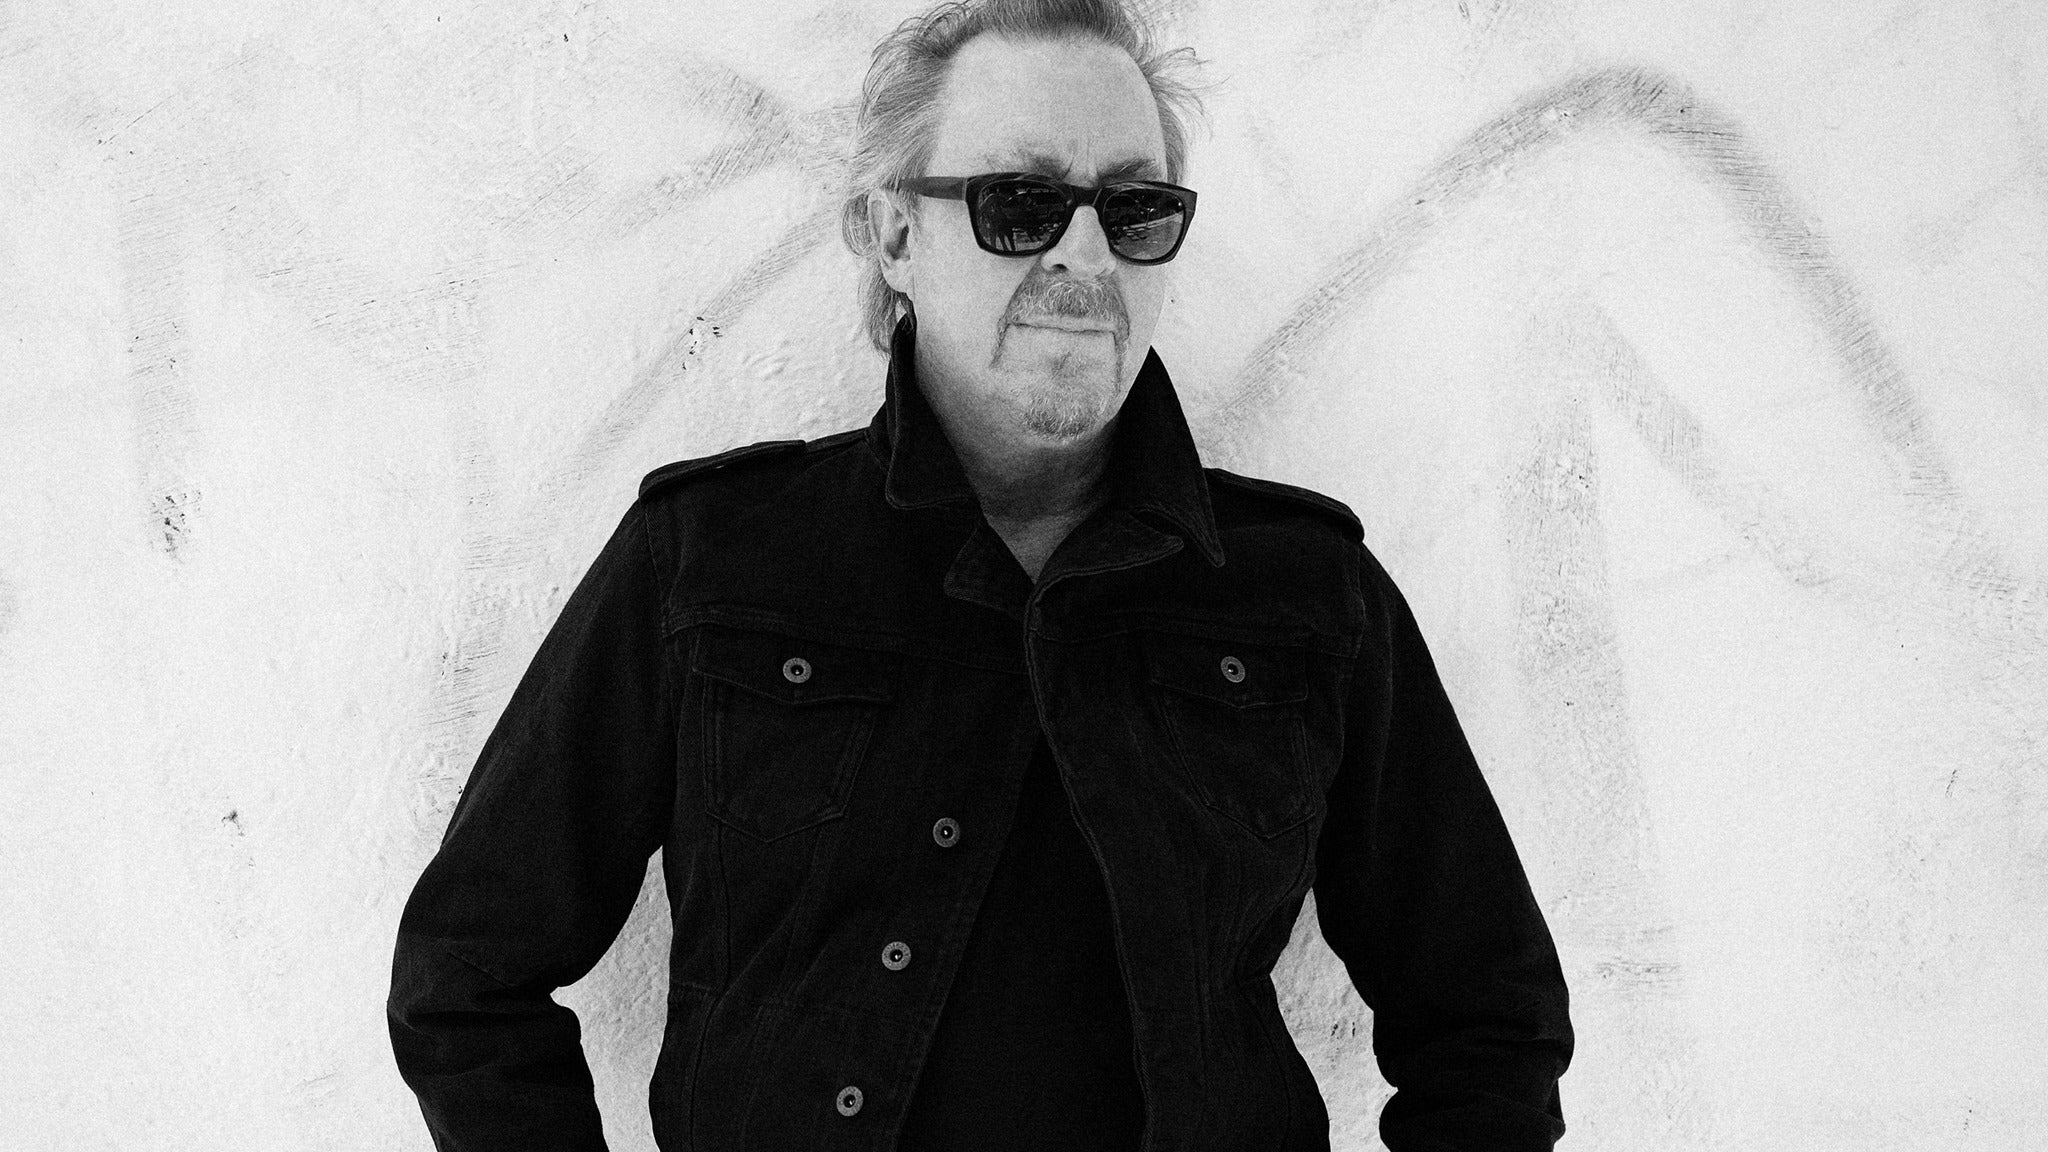 Boz Scaggs & The Robert Cray Band - Ft Lauderdale, FL 33312